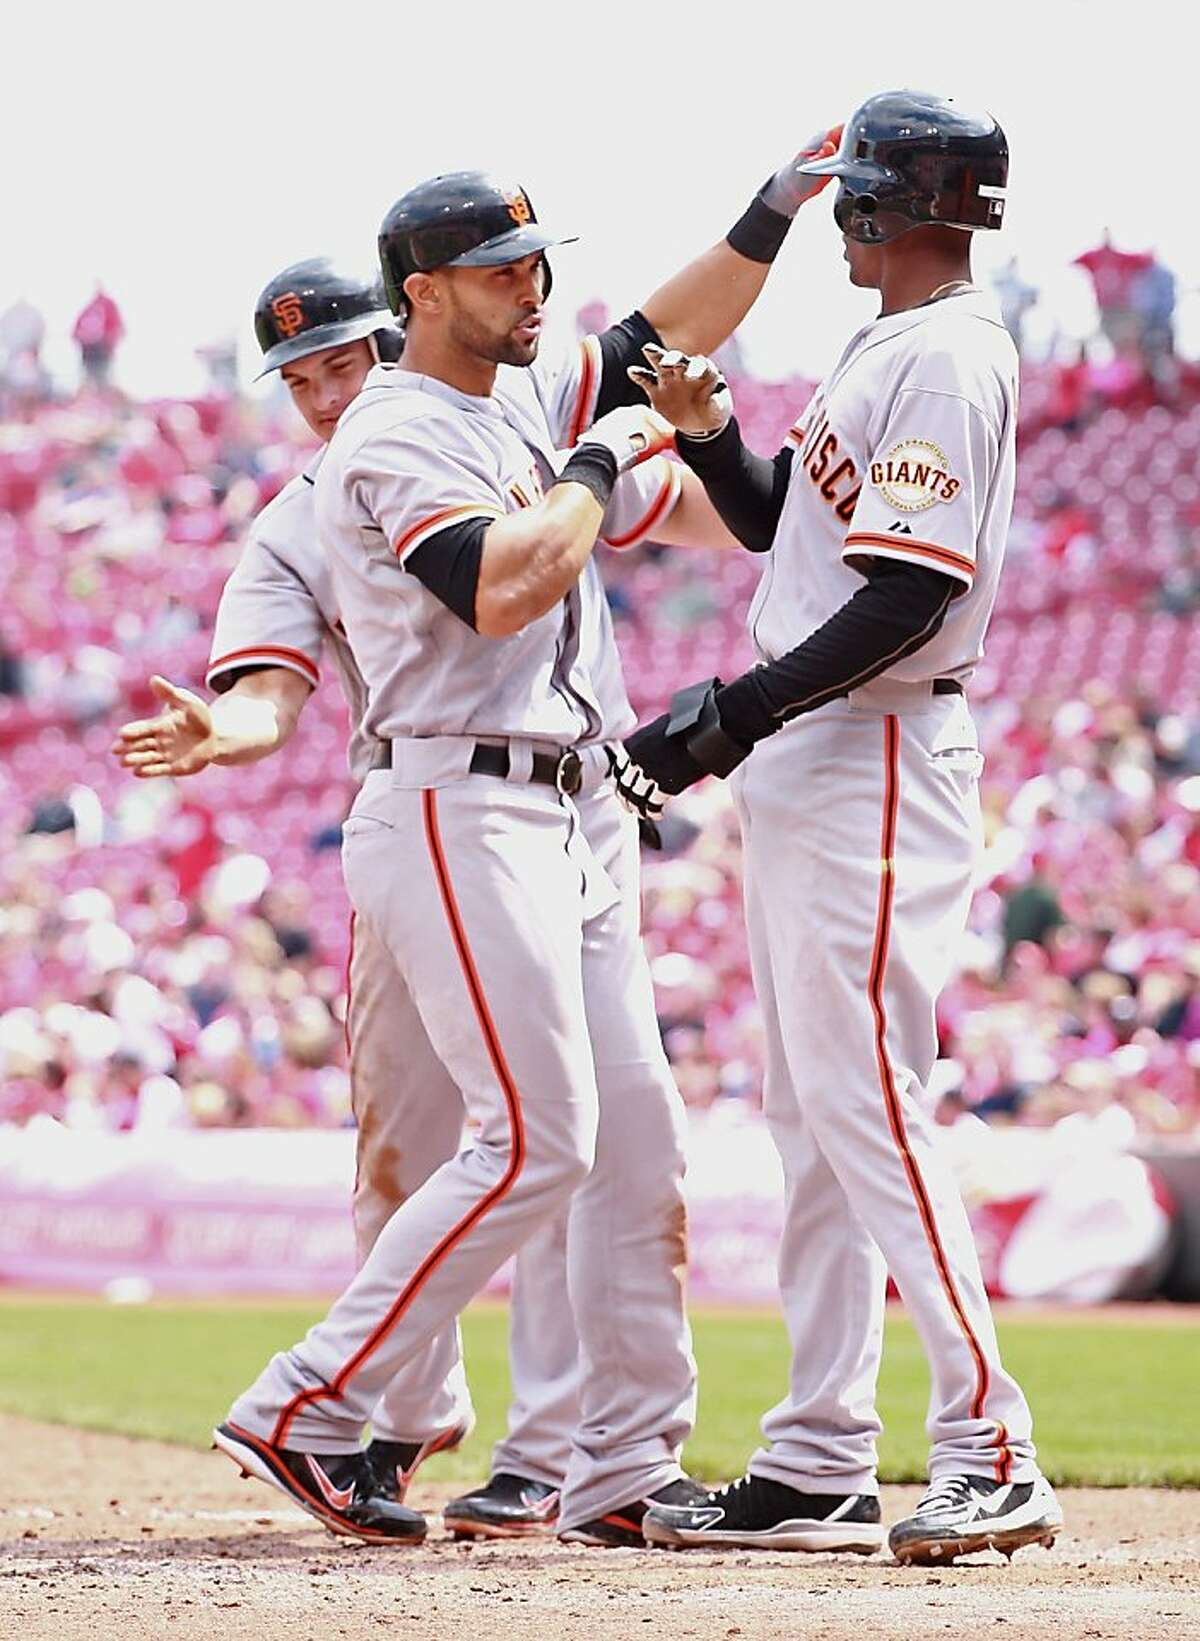 CINCINNATI, OH - APRIL 26: Angel Pagan #16 (center) of the San Francisco Giants is congratulated by Ryan Theriot #5 (left)and Joaquin Arias #13 (right) after Pagan hit a three run home run in the ninth inning of the game against the Cincinnati Reds at Great American Ball Park on April 26, 2012 in Cincinnati, Ohio. The Giants won 6-5. (Photo by Andy Lyons/Getty Images)